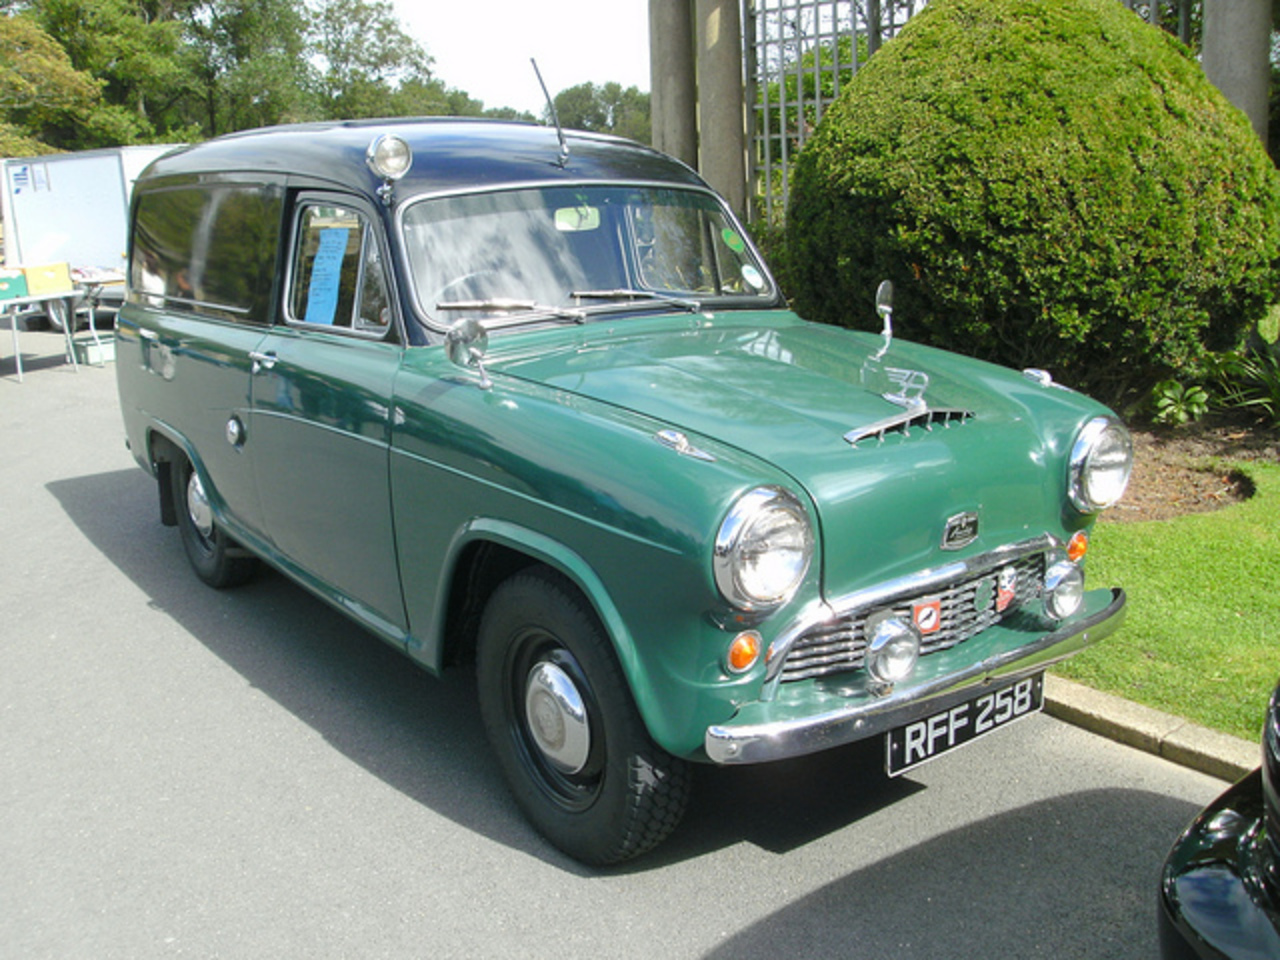 1961 Austin A55 Cambridge Half-Ton Van 1.5 | Flickr - Photo Sharing!